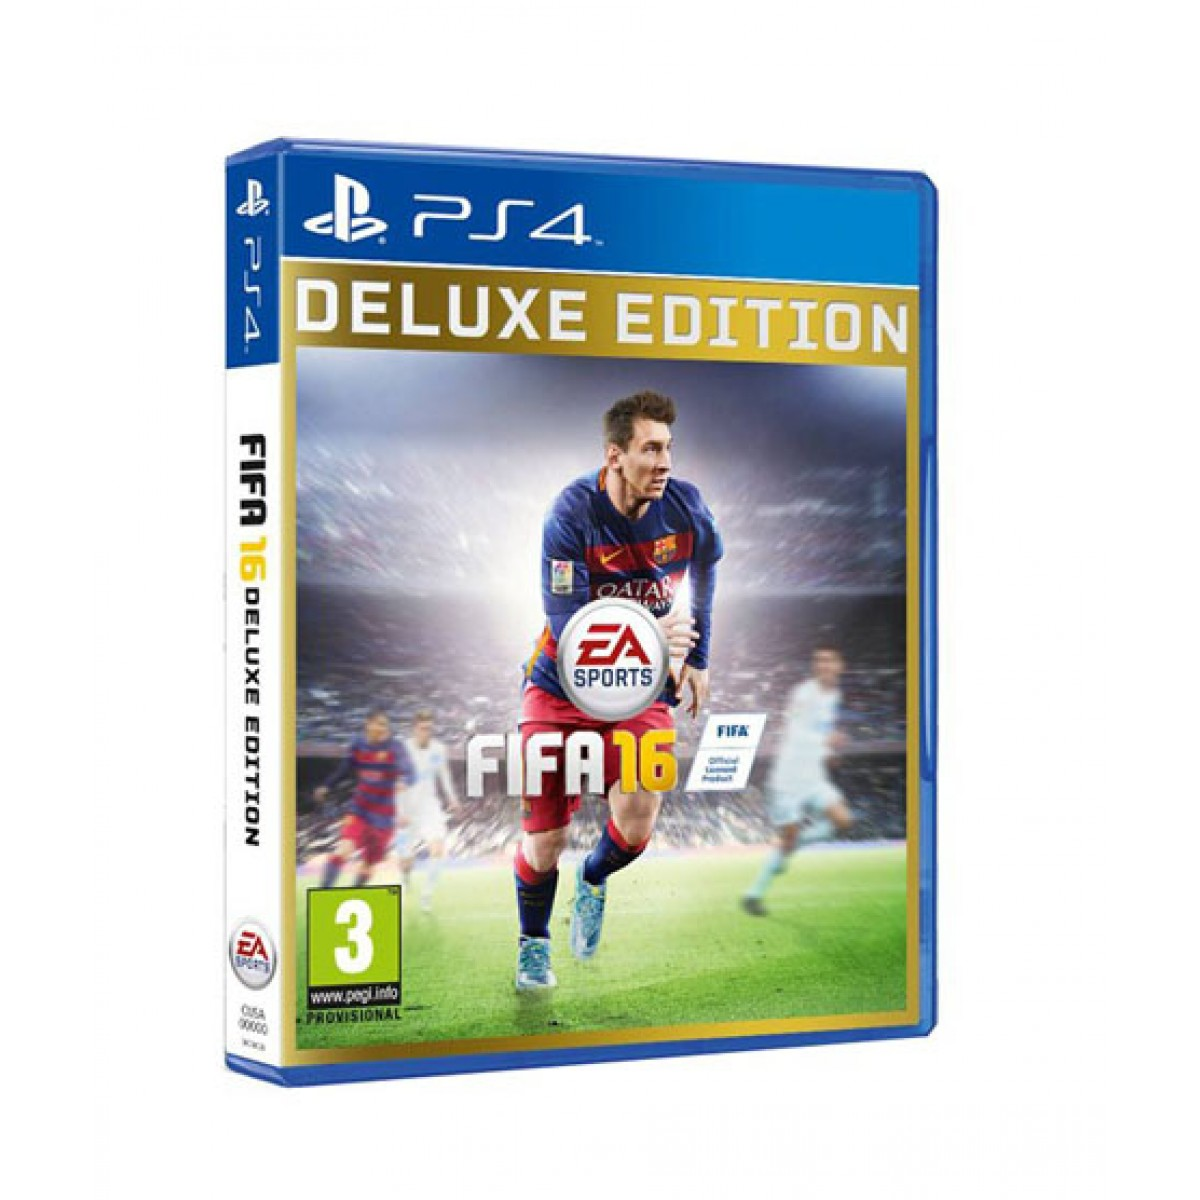 FIFA 16 (Deluxe Edition) Game For PS4